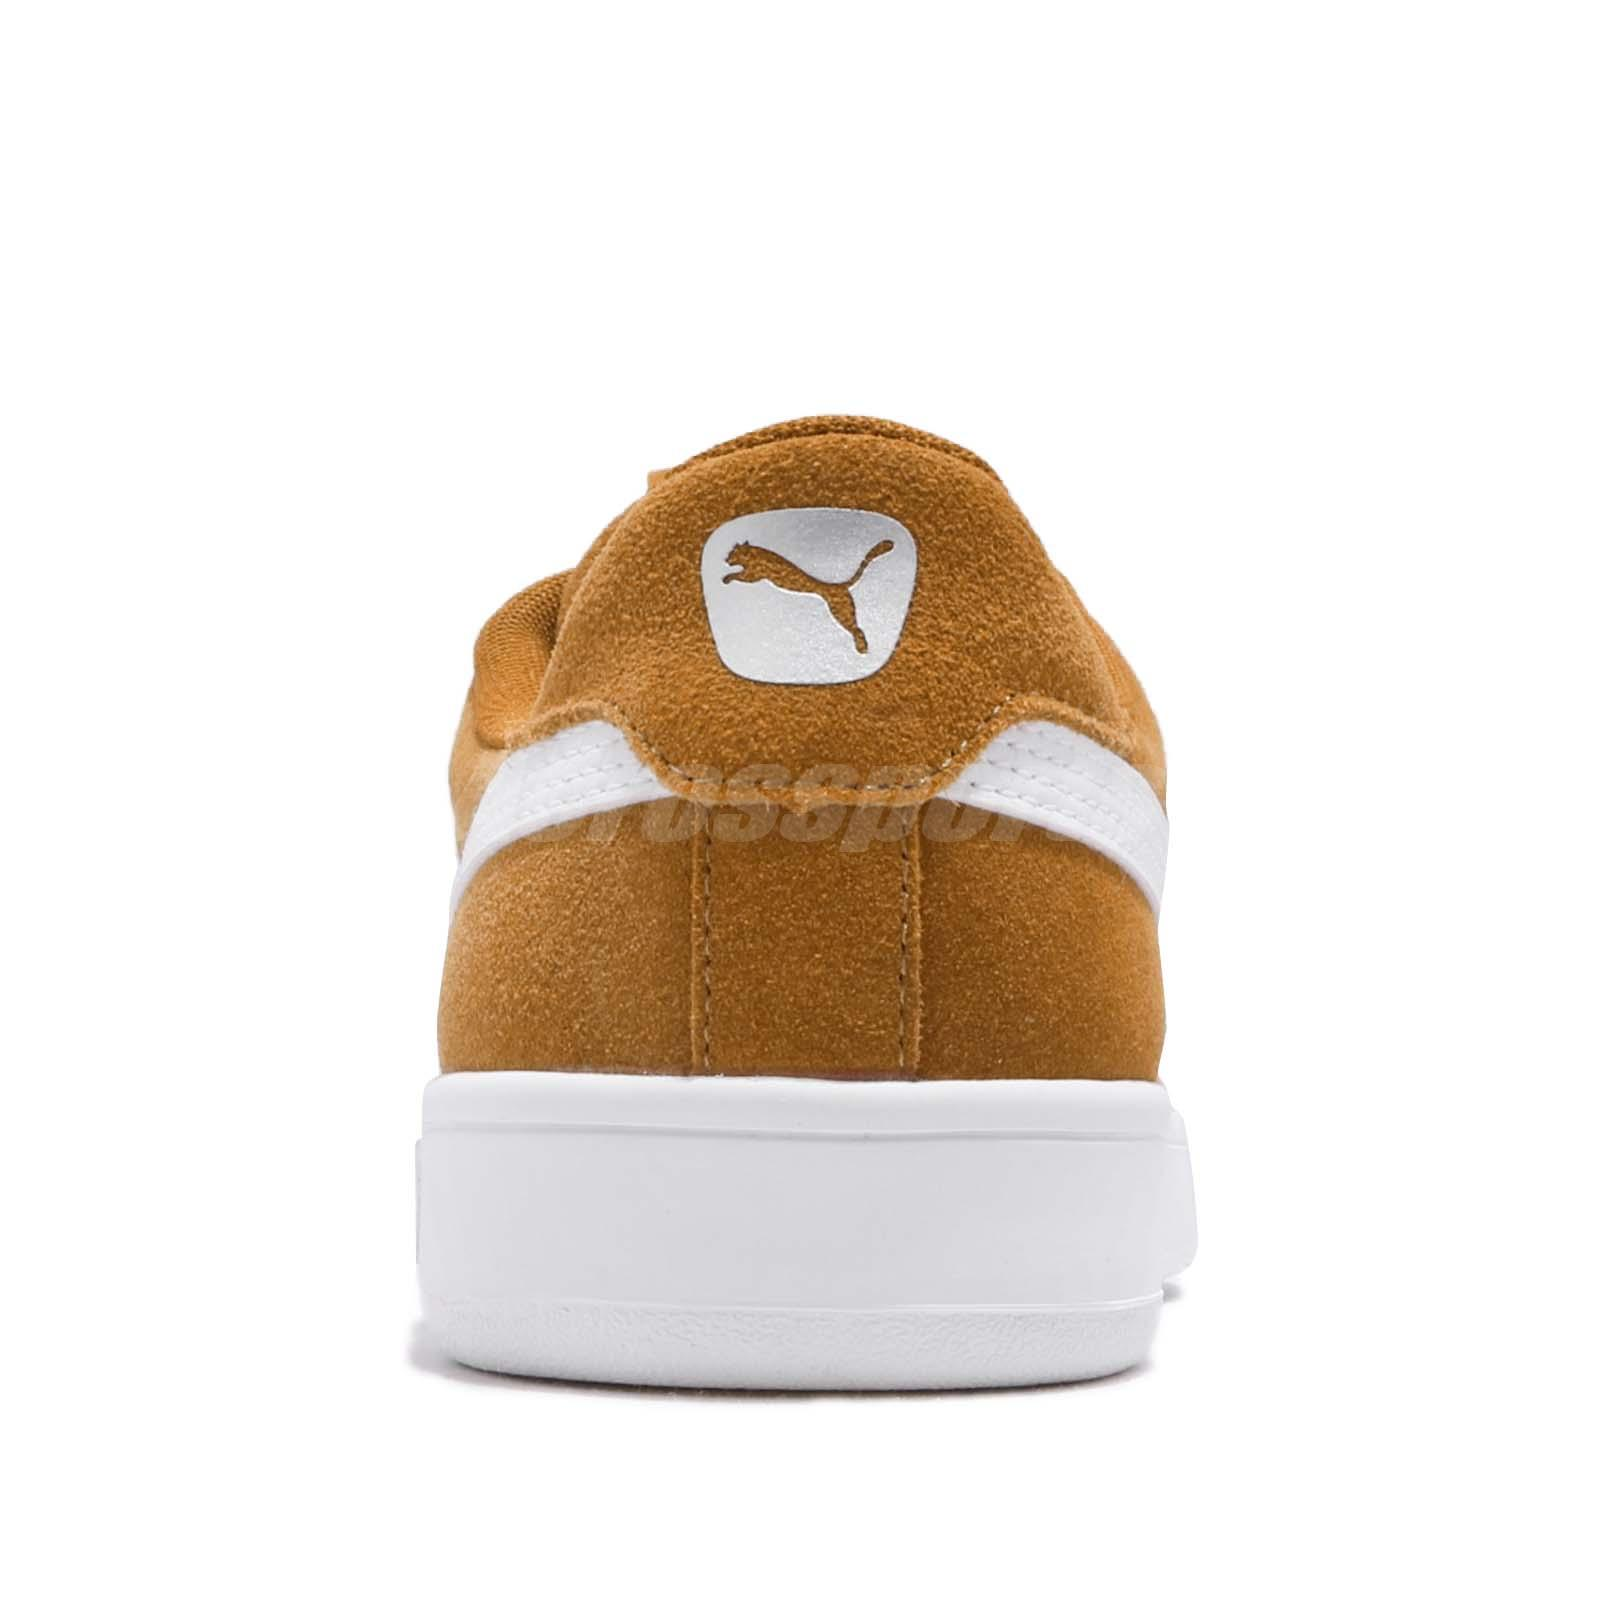 9f9fe2a7a467 Puma Court Breaker Derby Brown White Suede Mens Womens Casual Shoes ...